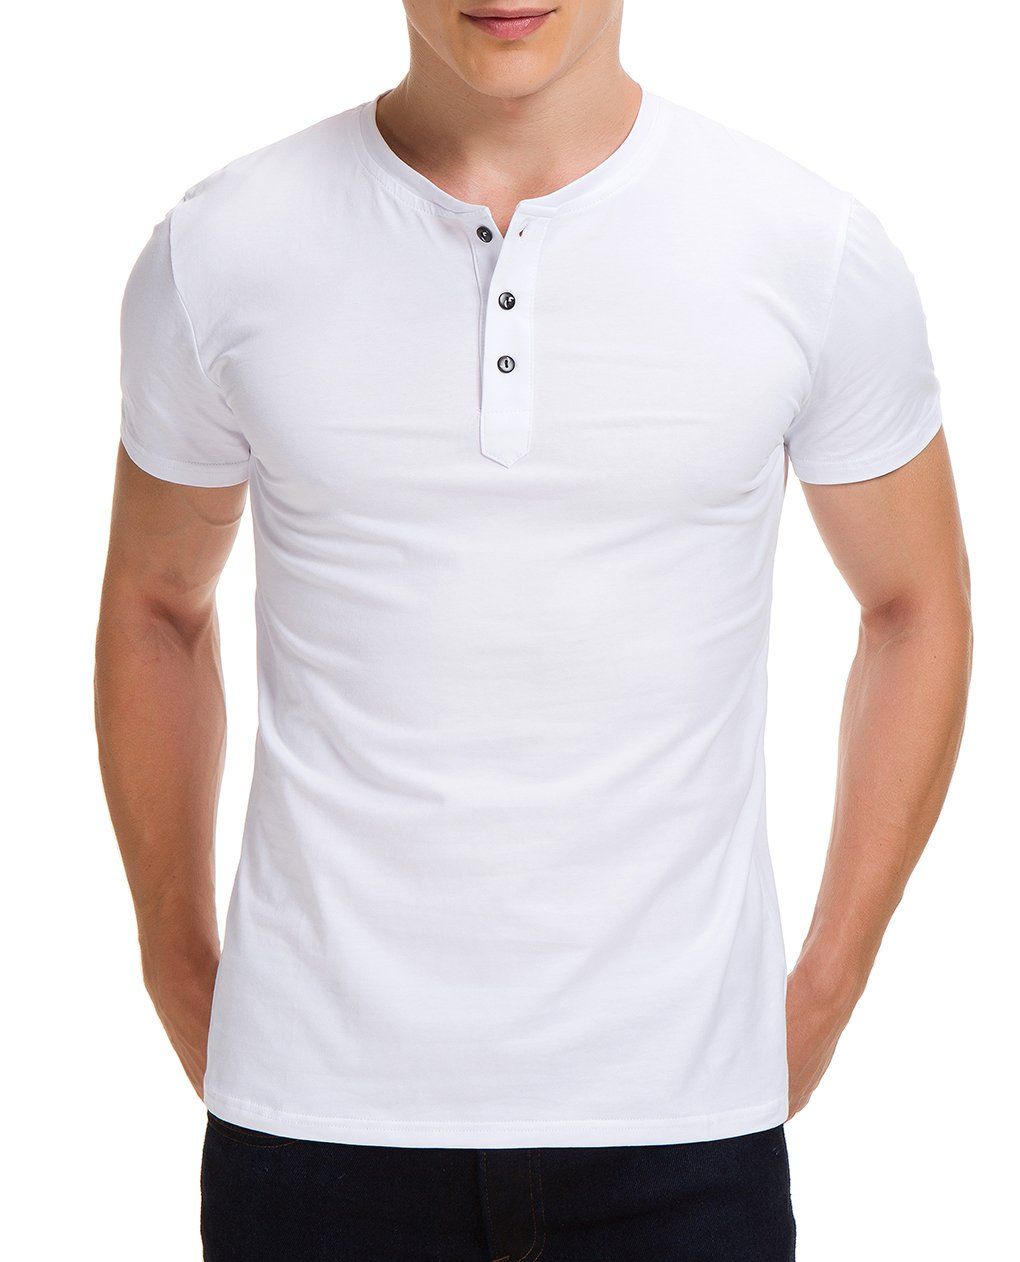 0e655be8 Boisouey Men's Casual Slim Fit Short Sleeve Henley T-Shirts Cotton Shirts  White L